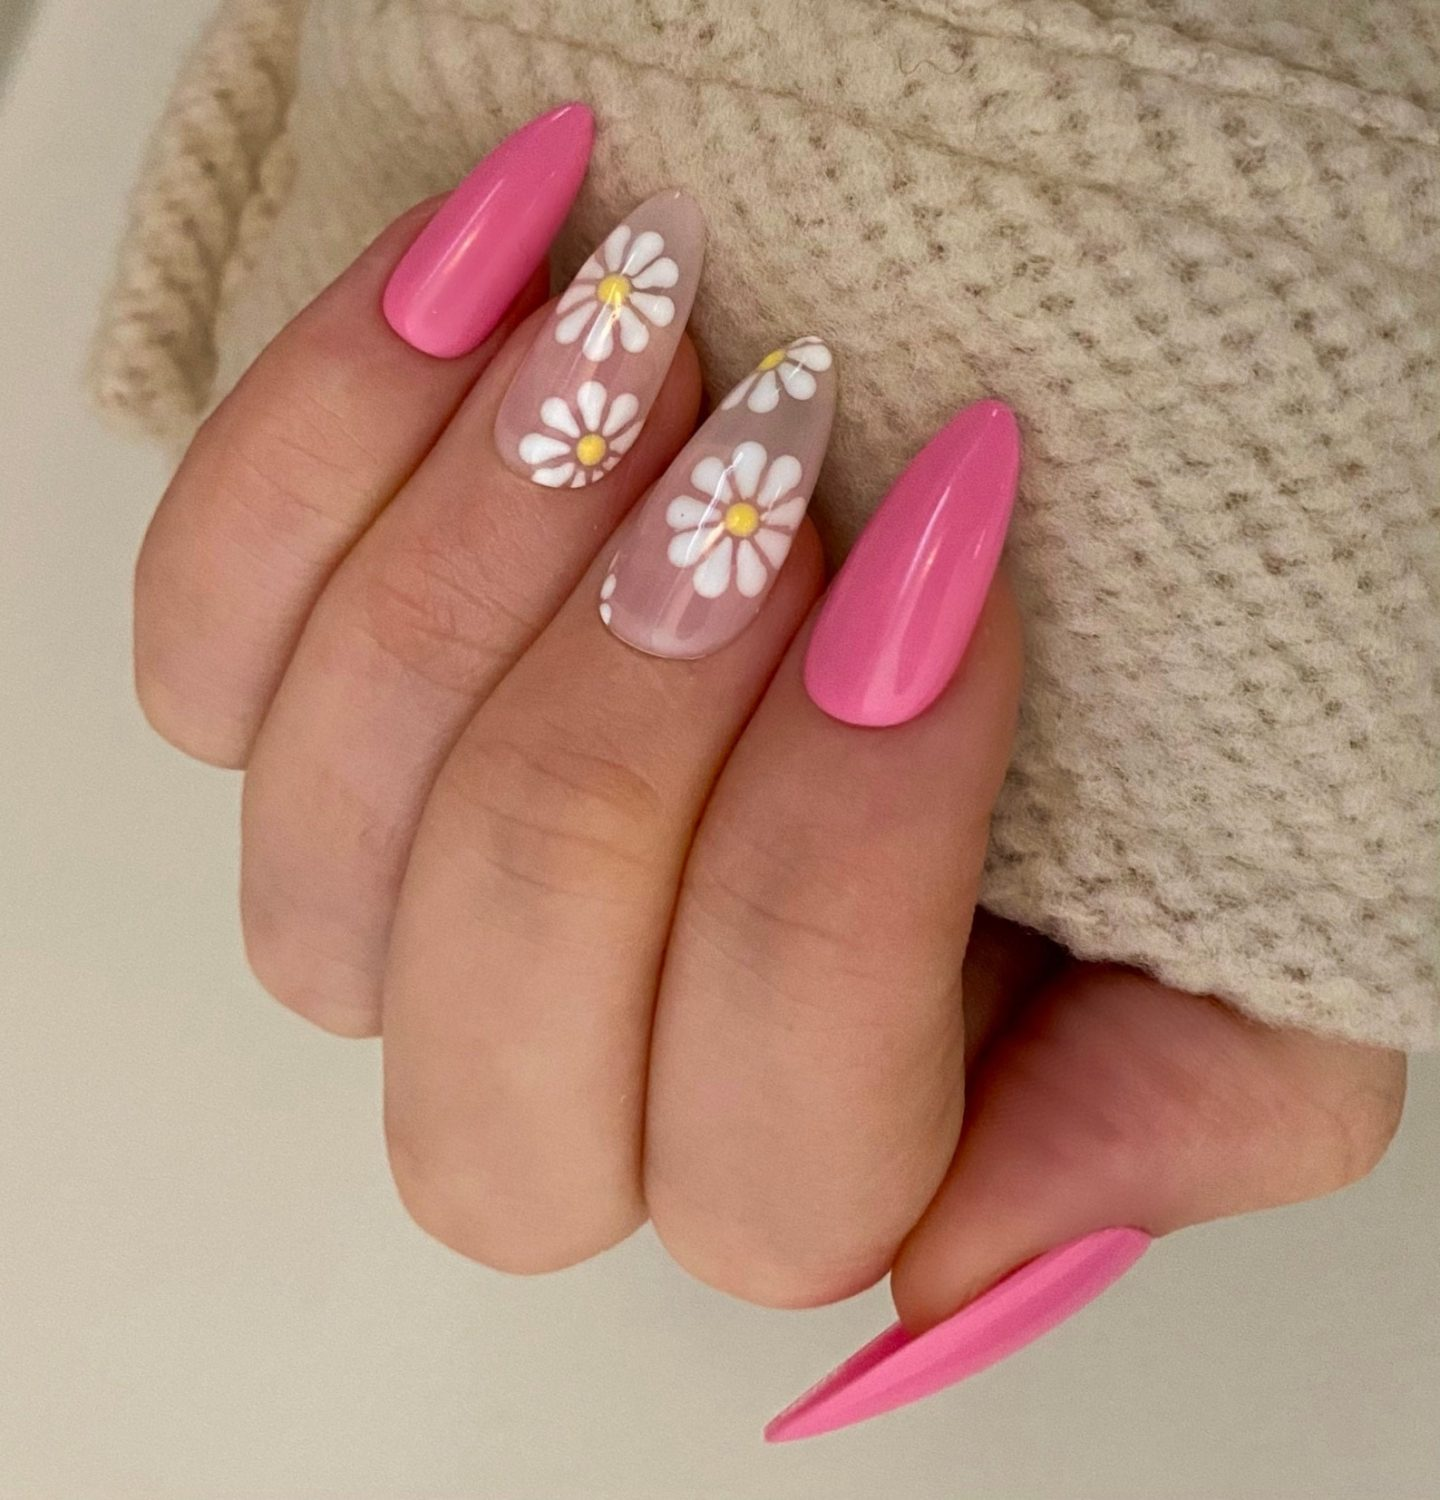 Pretty hot pink almond nails with daisy nail art